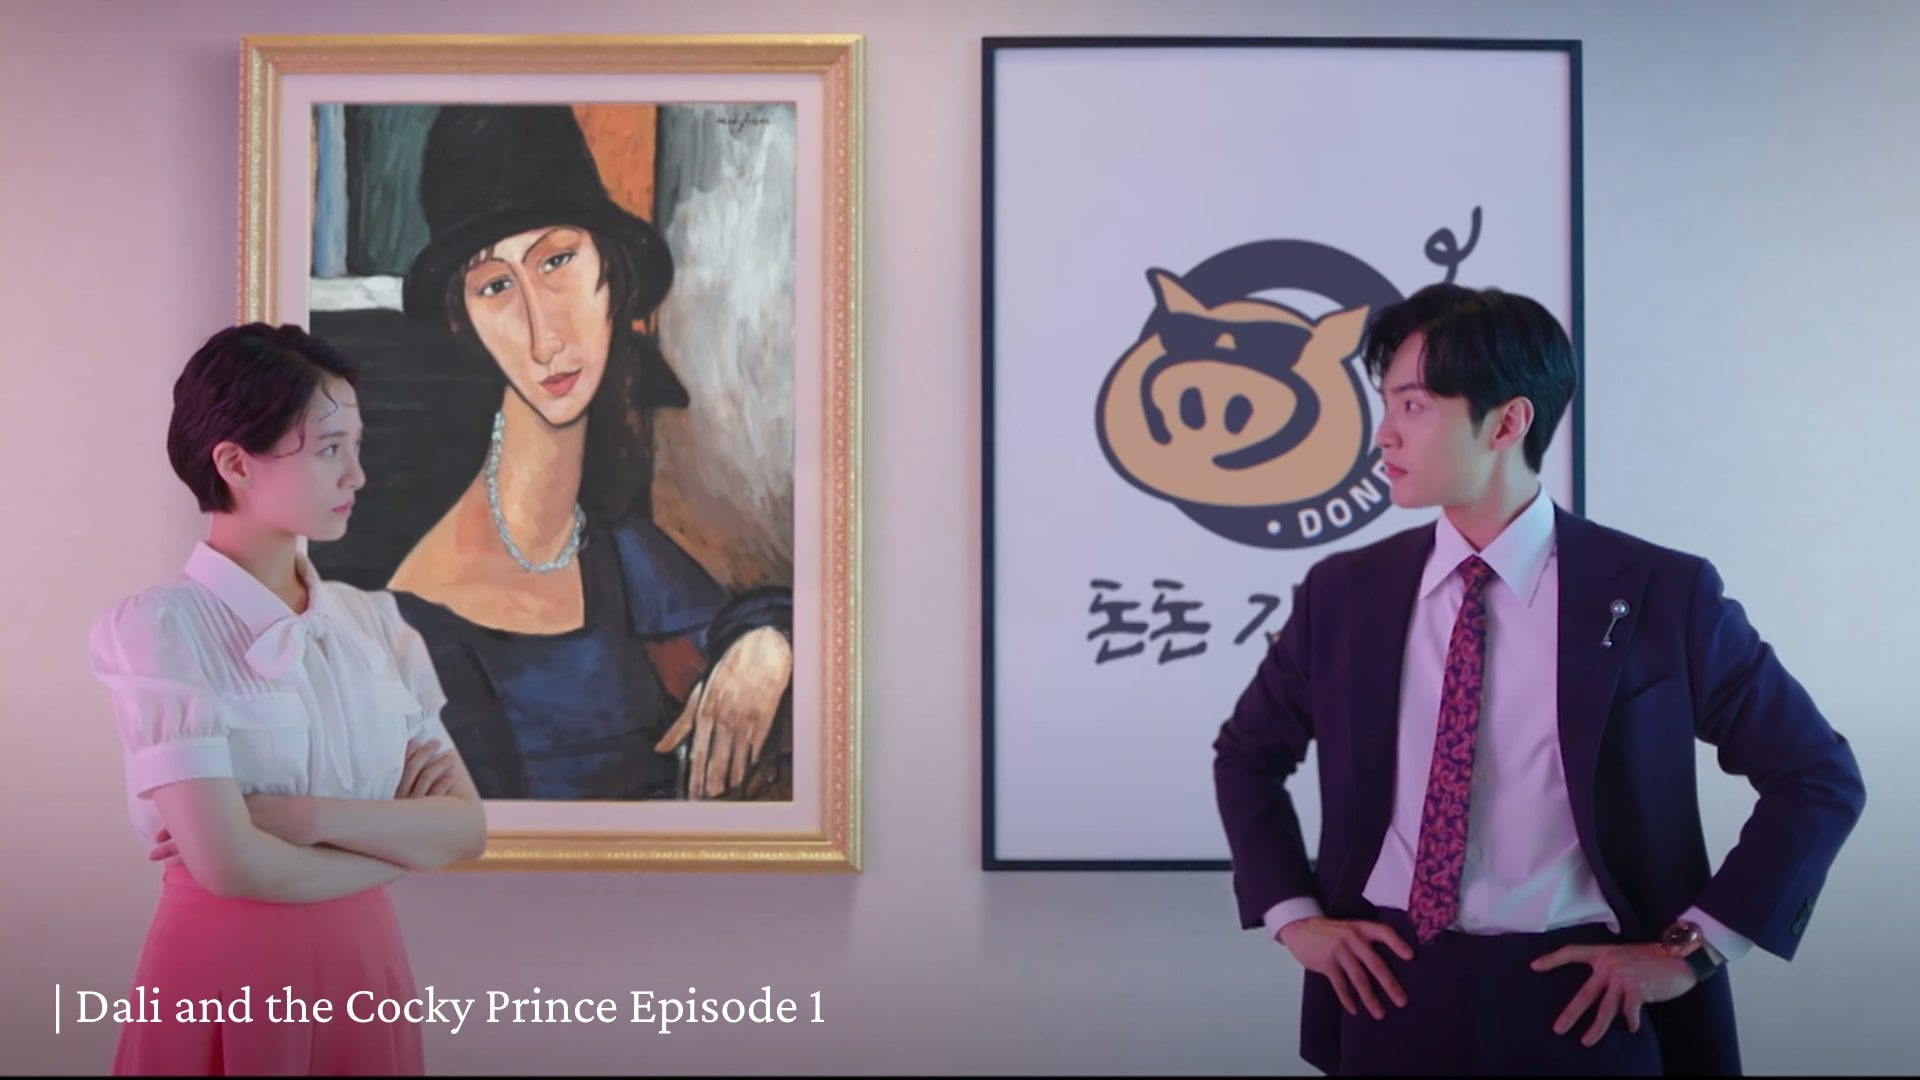 Dali and the cocky prince Episode 1